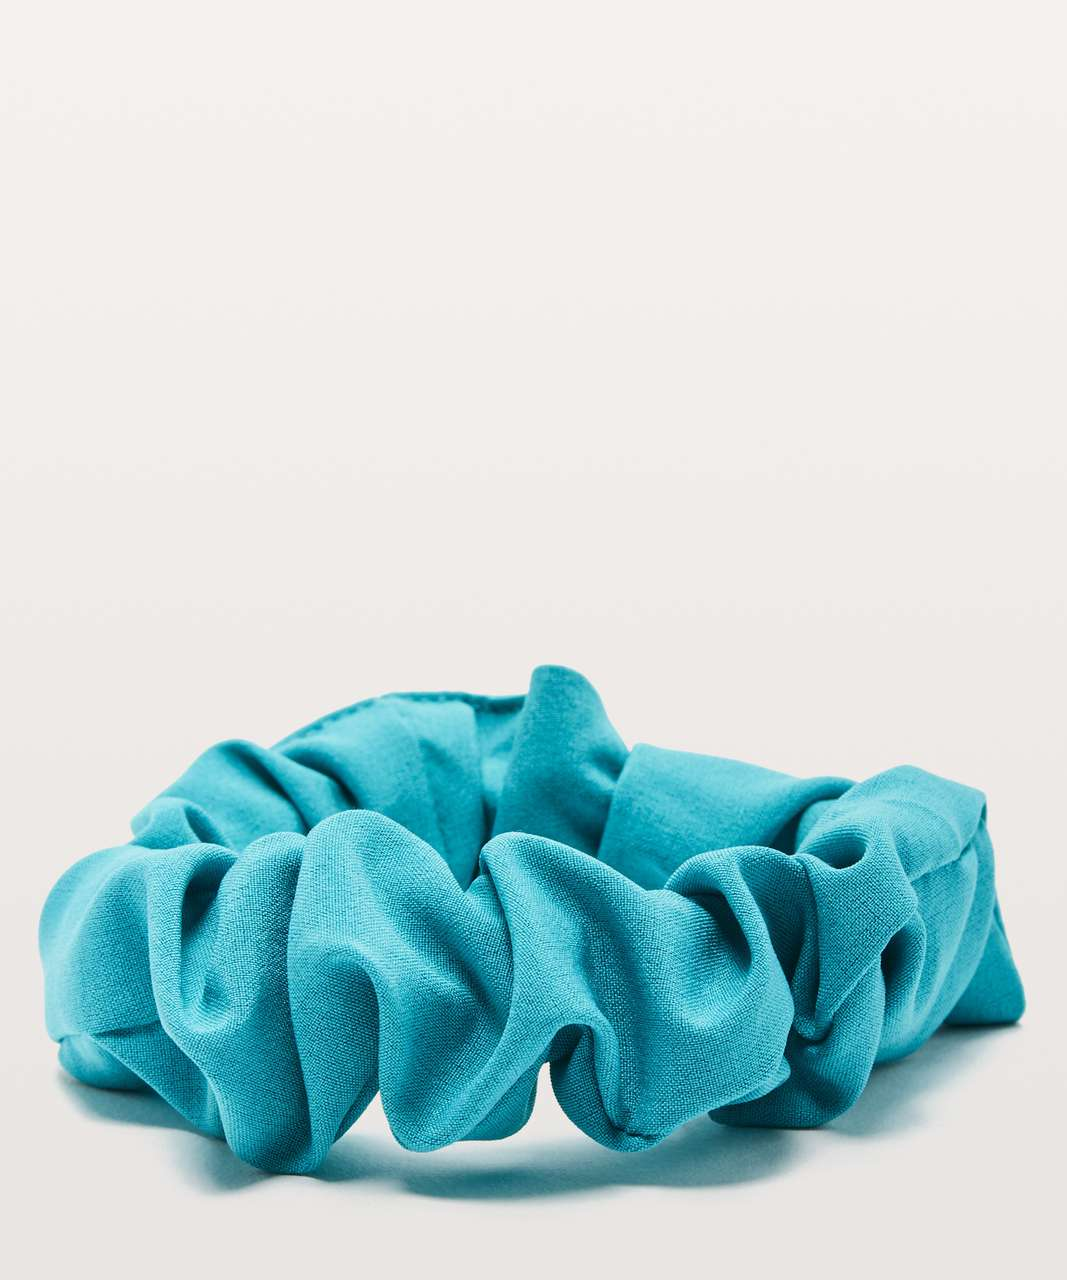 Lululemon Uplifting Scrunchie - Amazonite